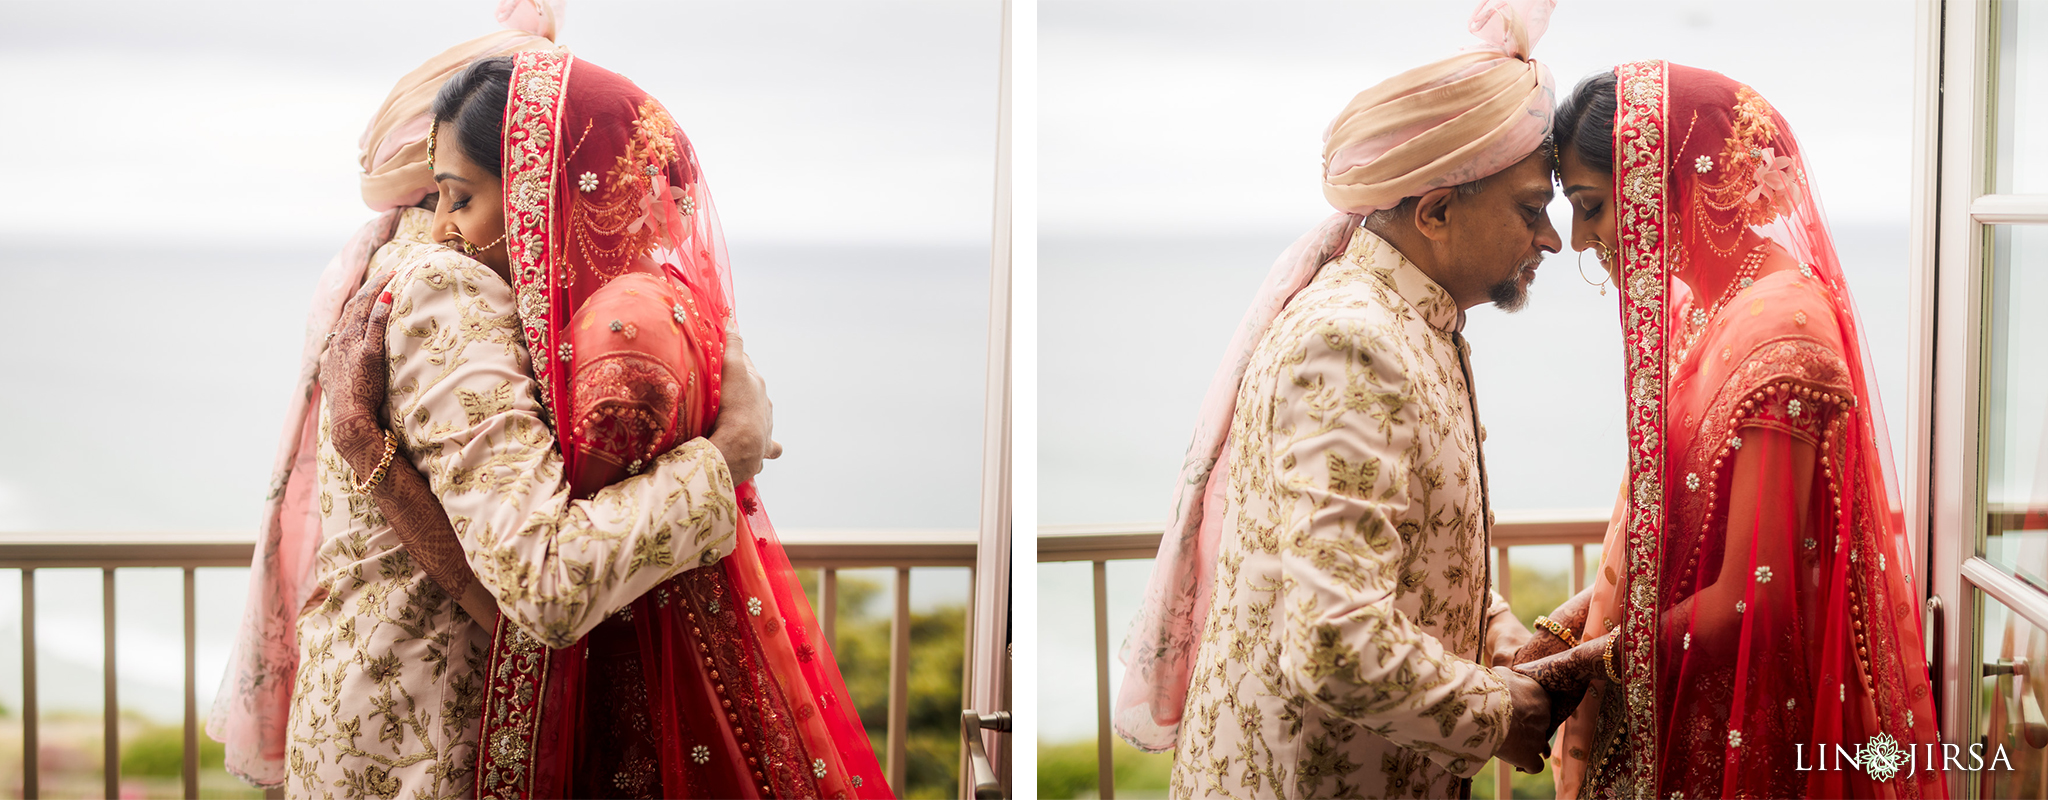 08 Ritz Carlton Laguna Niguel Indian Wedding Photography